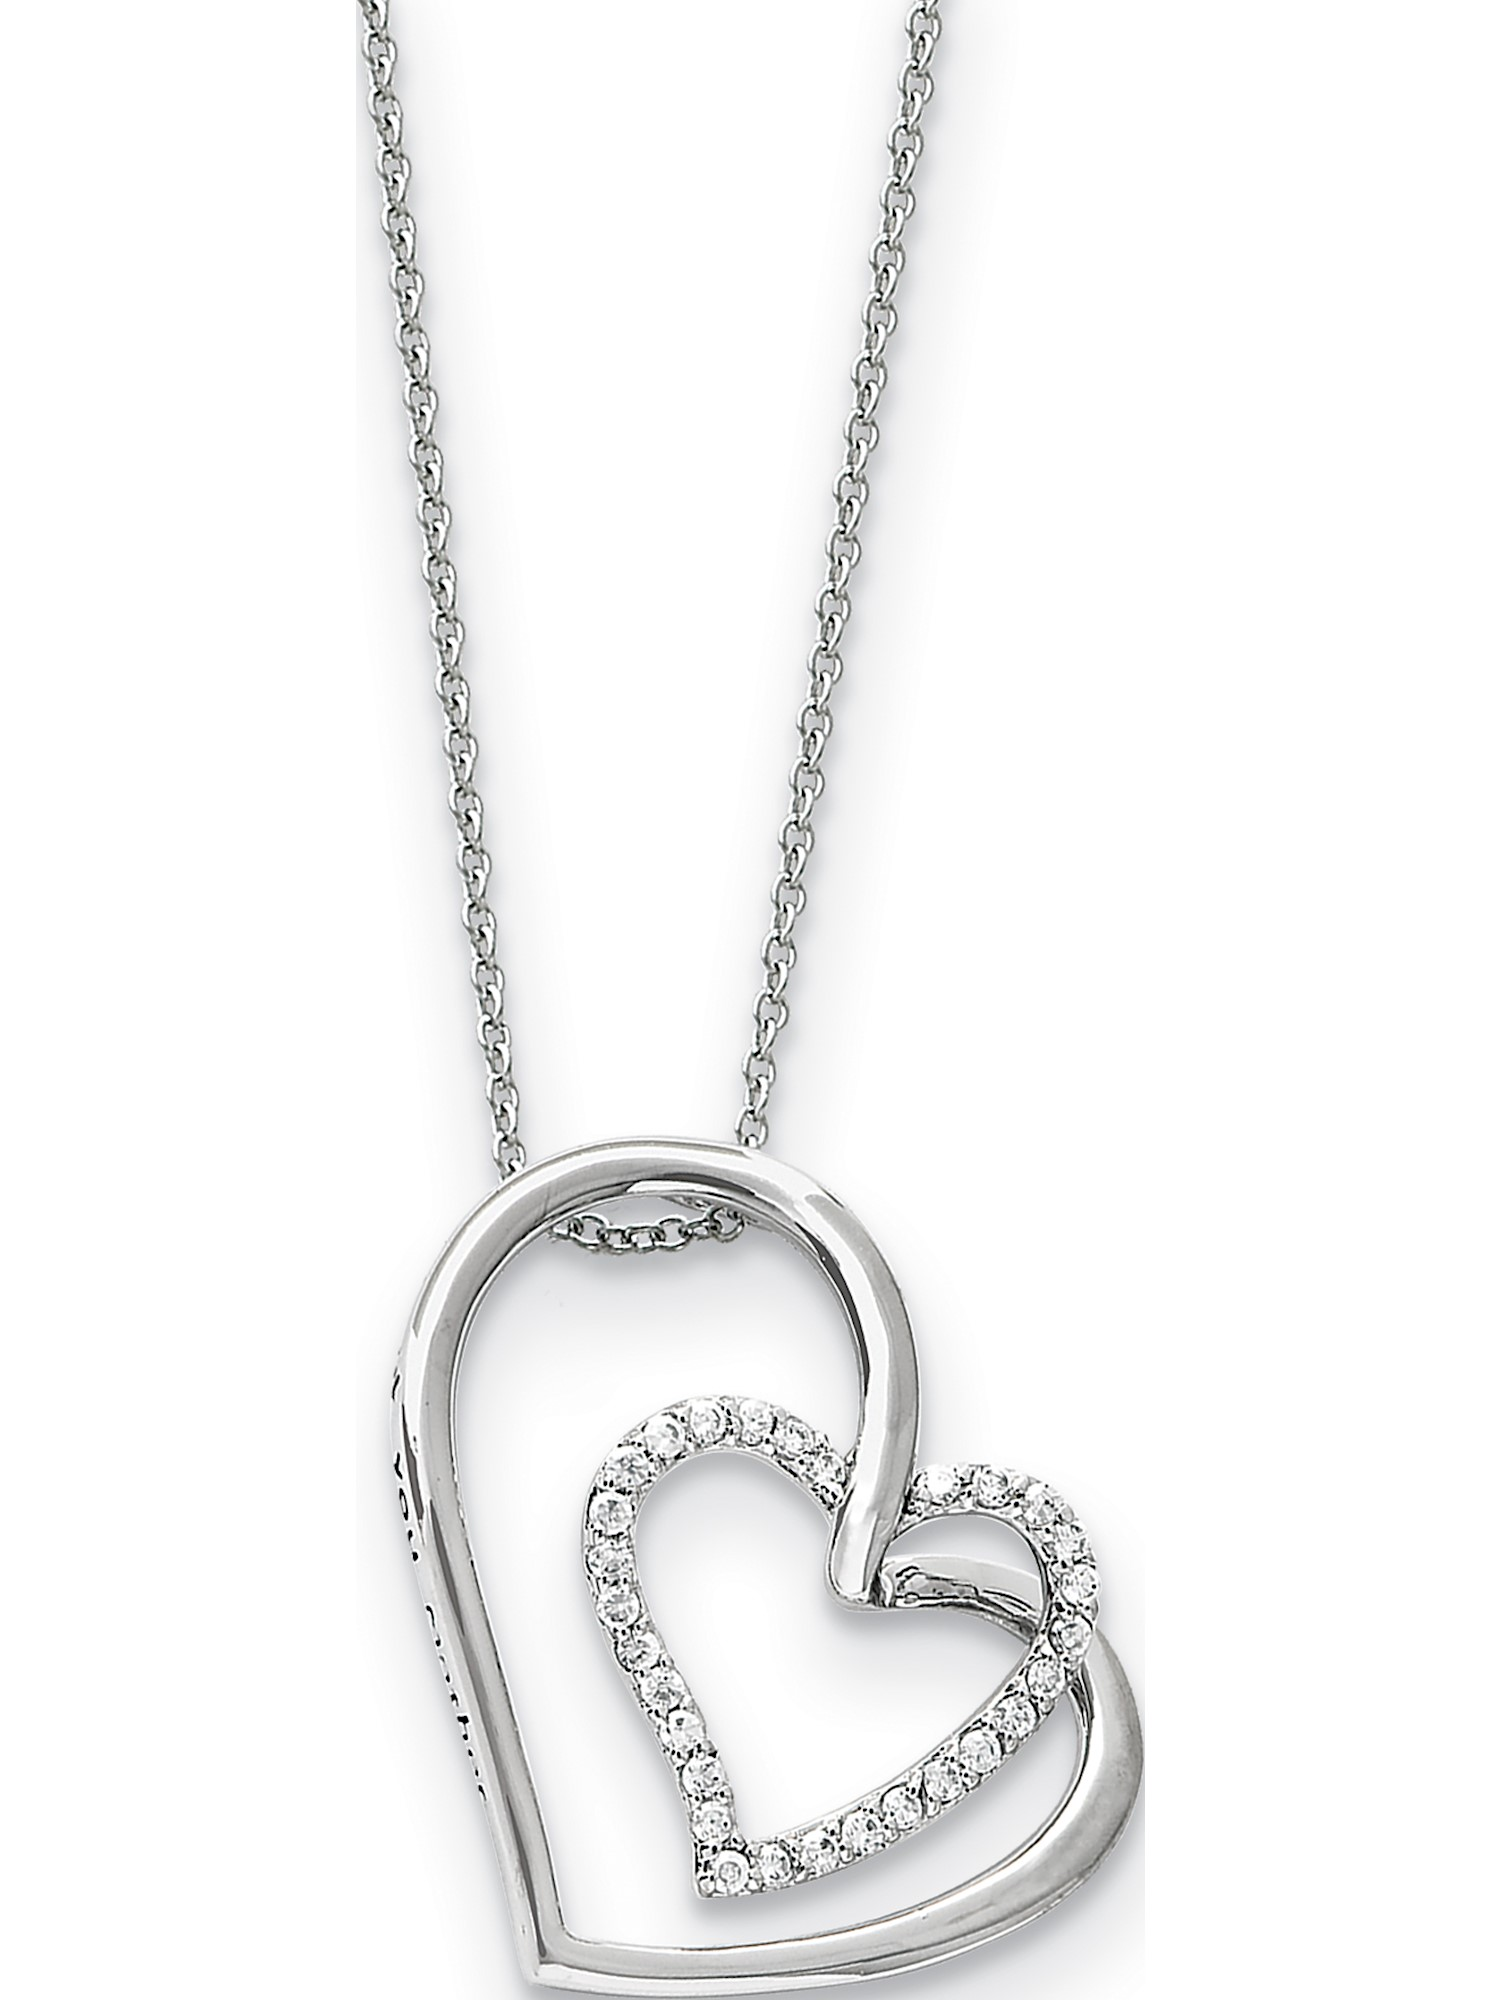 Jewelry Necklaces Necklace with Pendants Sterling Silver Antiqued In My Heart 18in Necklace